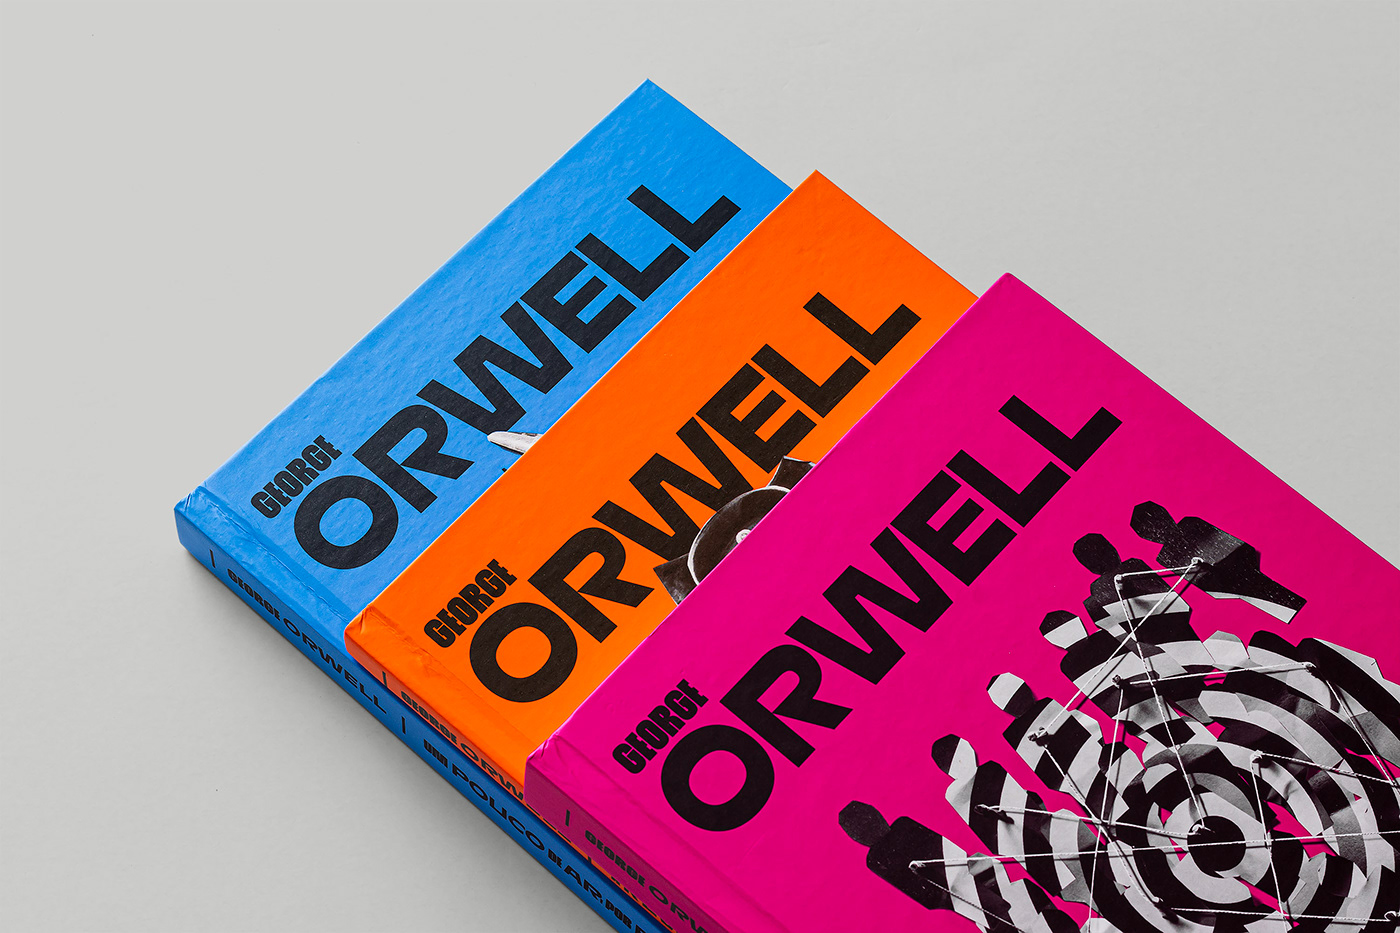 Thumbnail for Rafael Nobre Lends Vibrant, Bold Design to Some of George Orwell's Most Famous Books